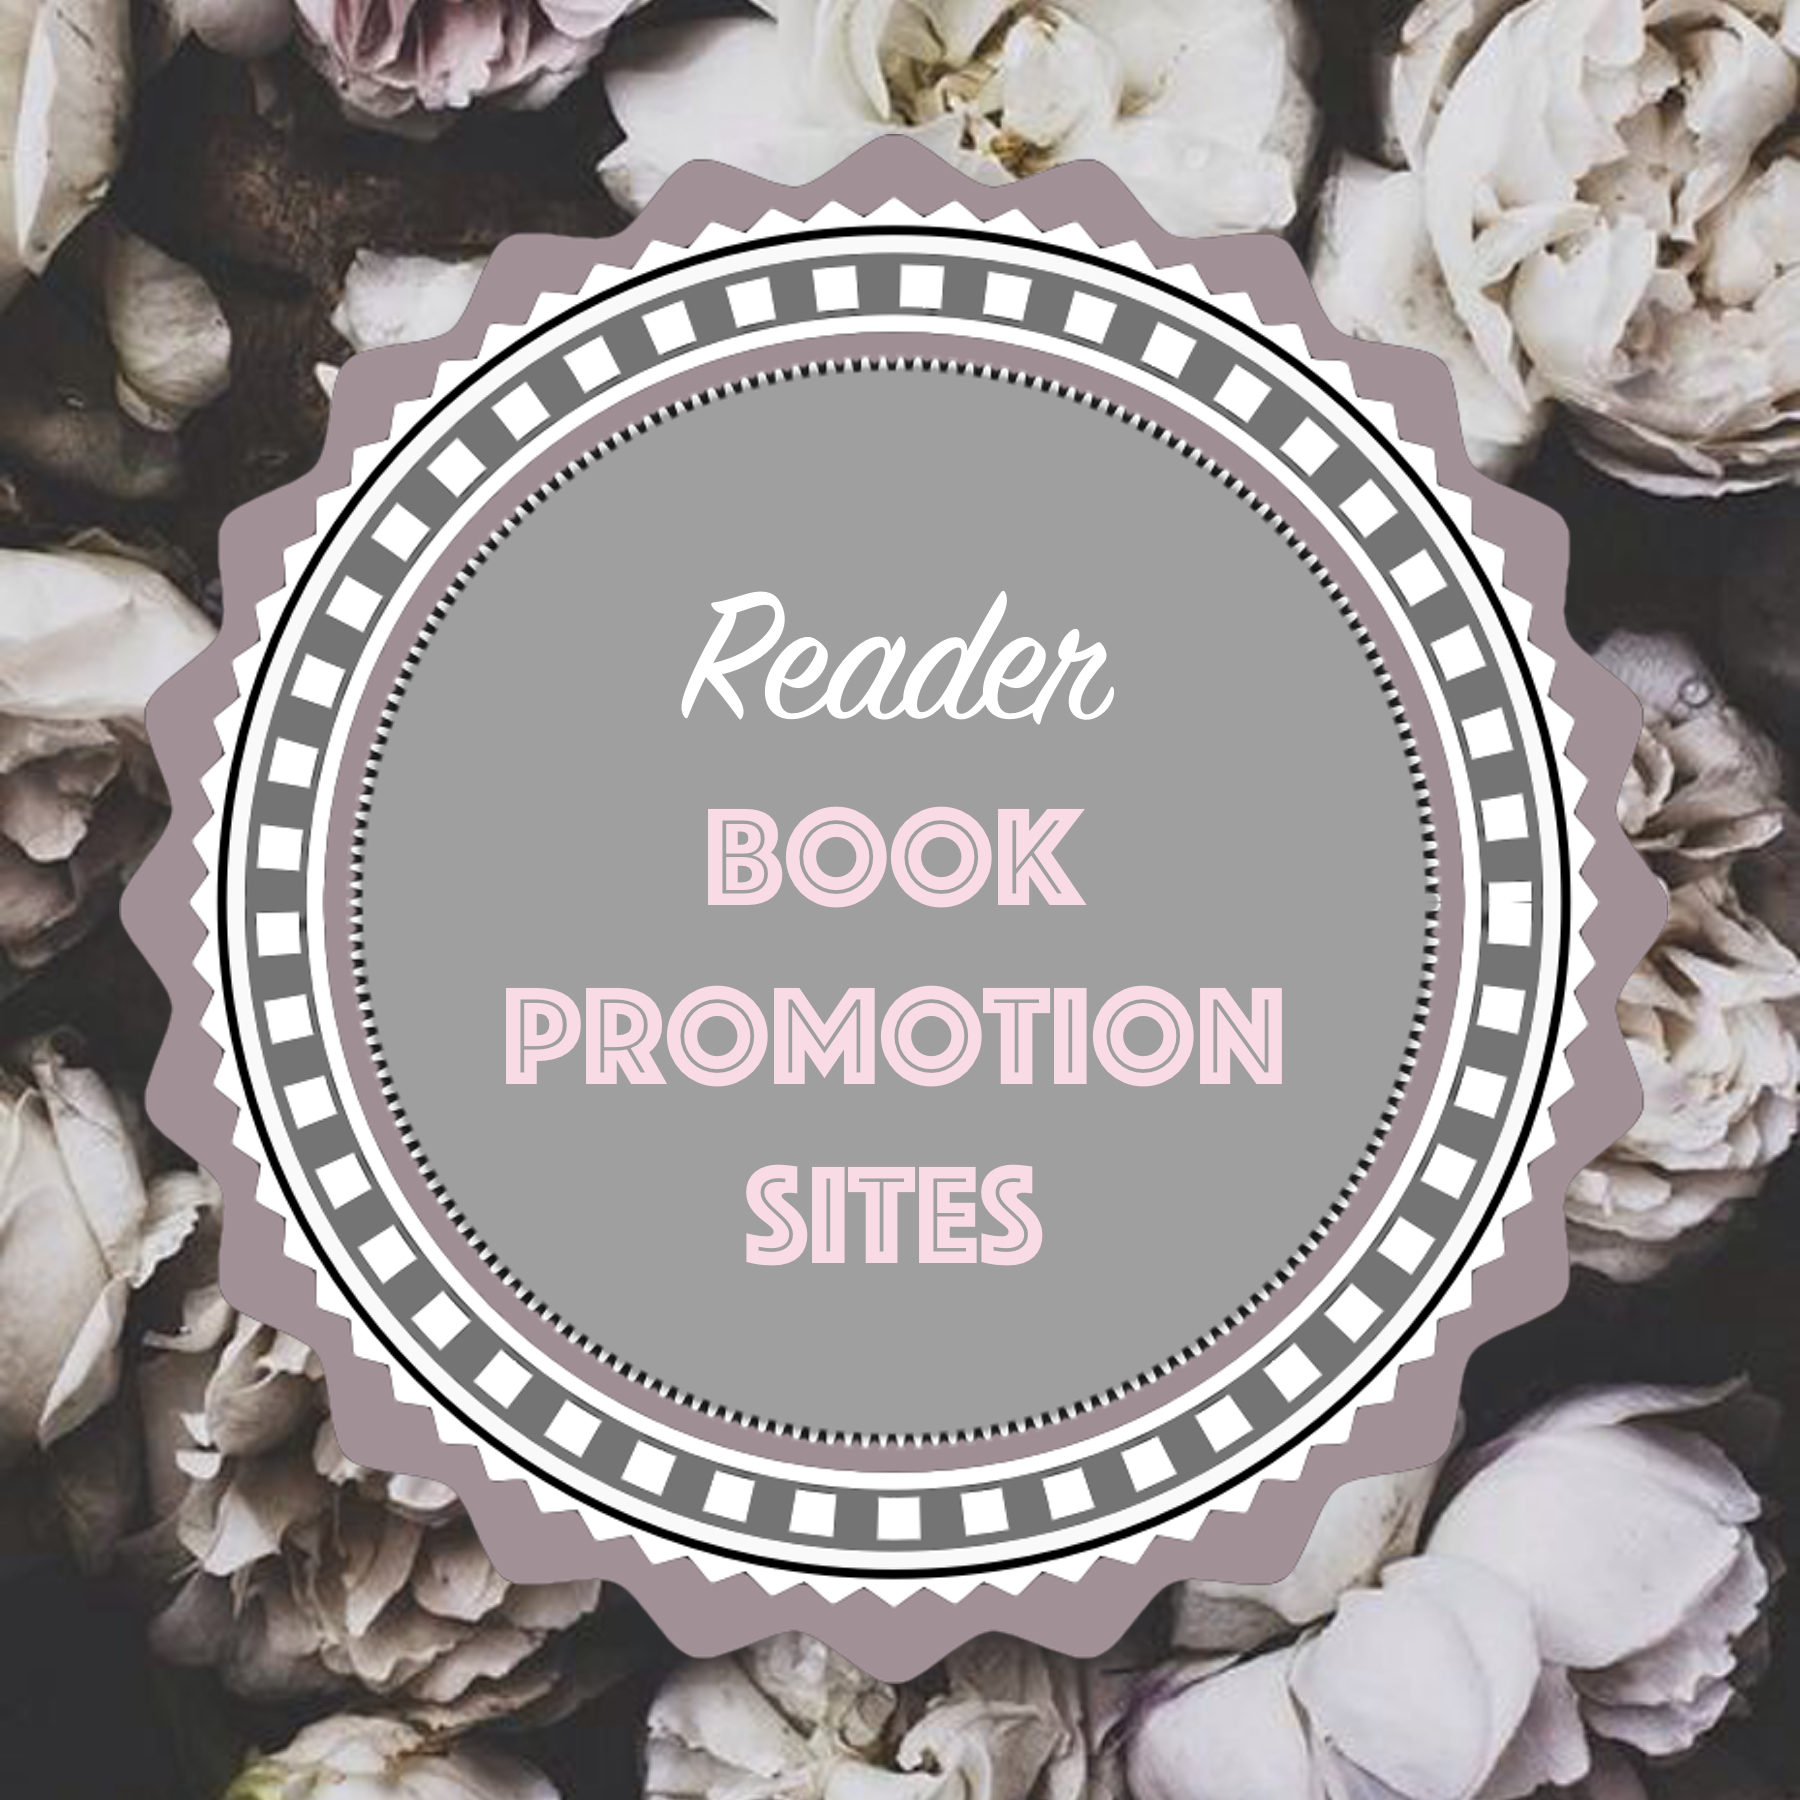 Reader Book Promotion Sites.jpg